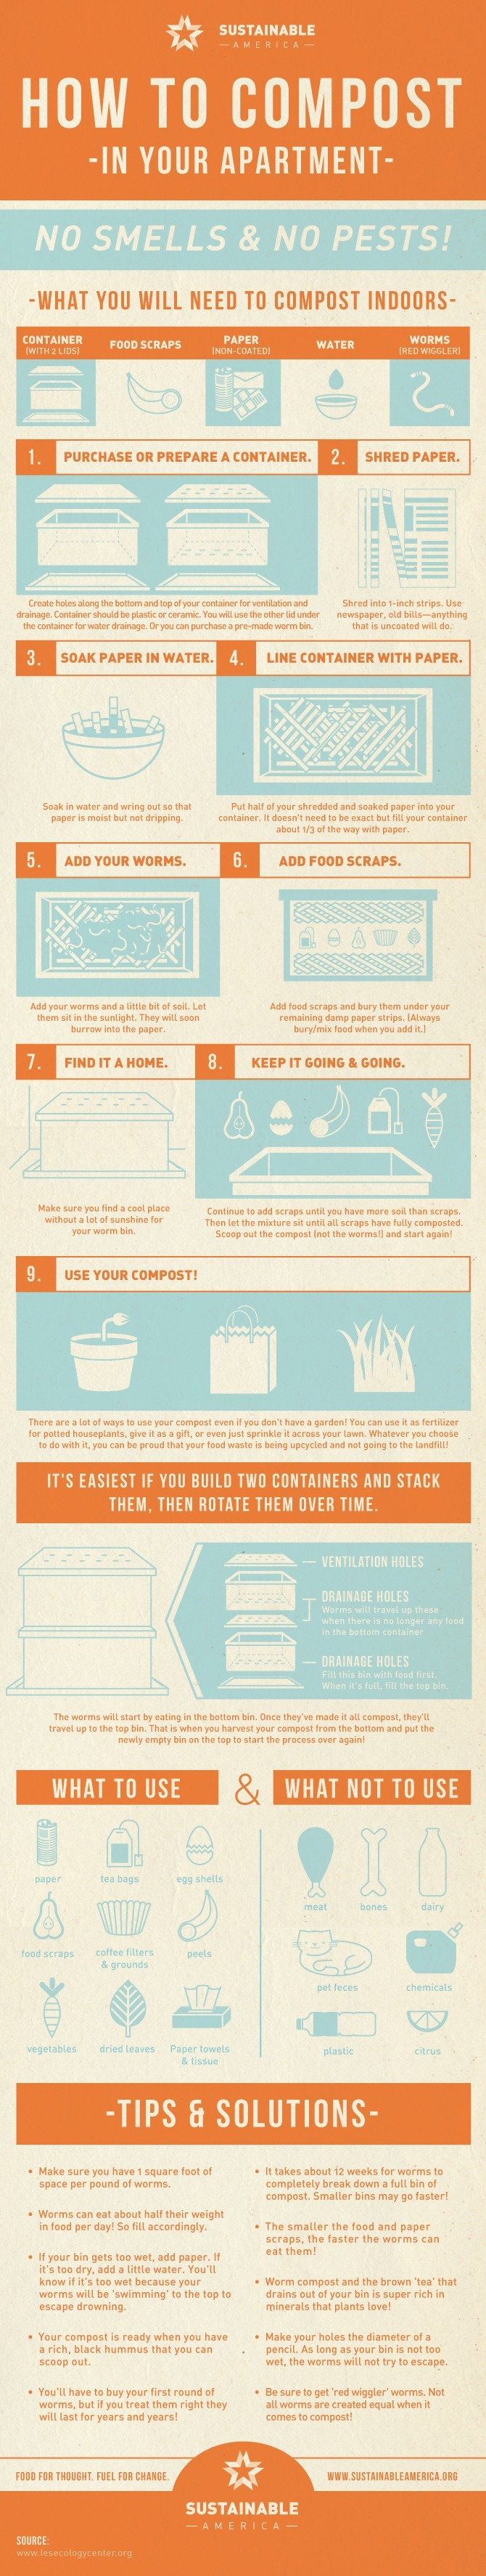 17 best gardening composting images on pinterest gardening tips